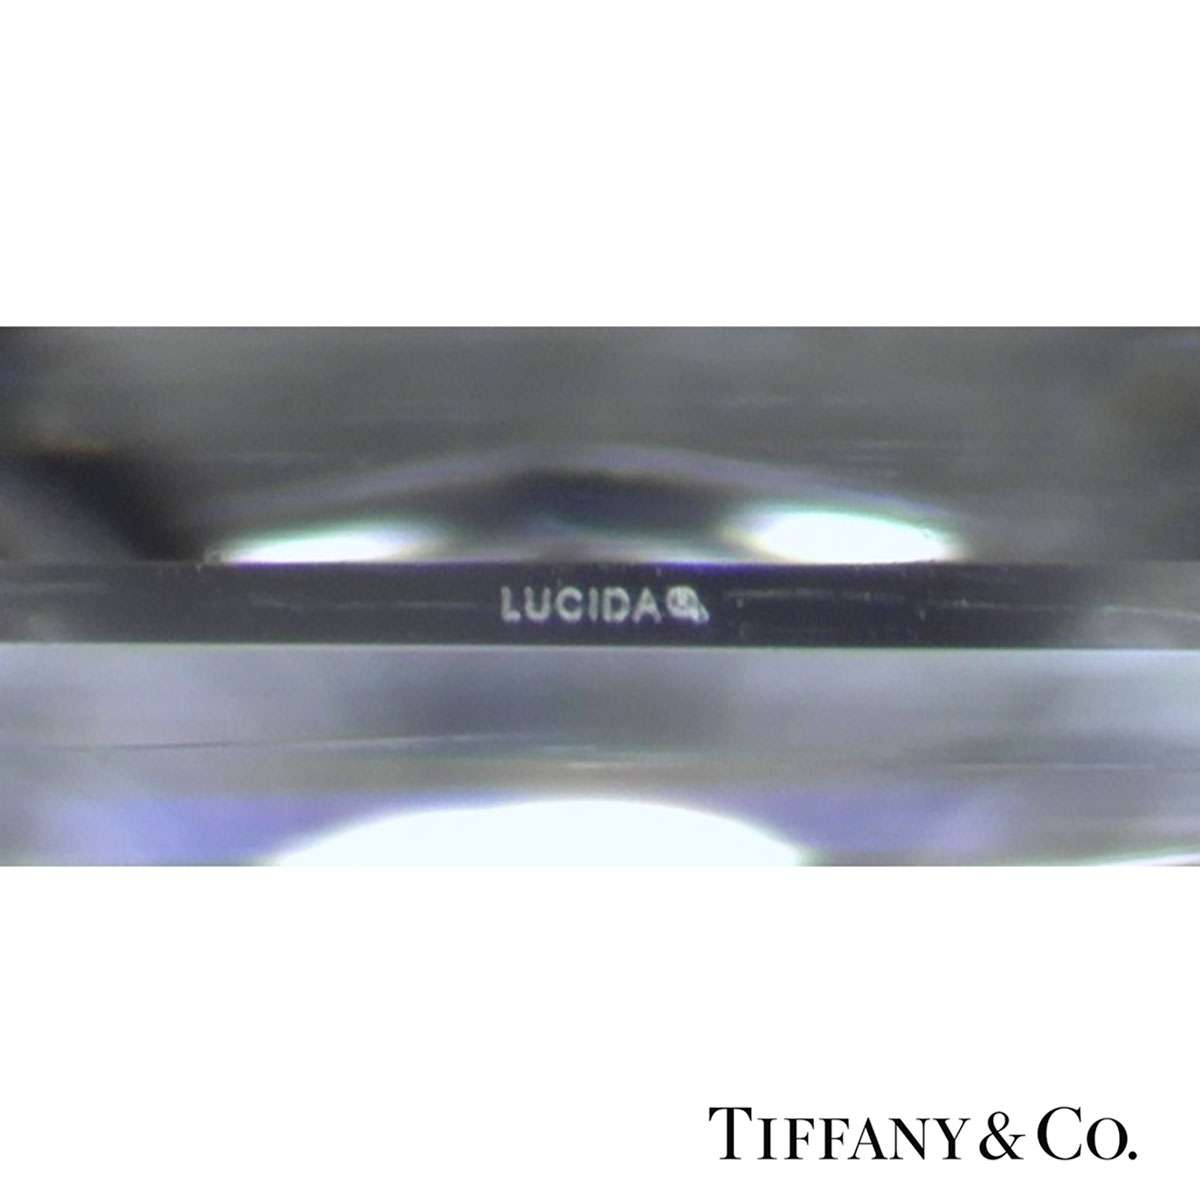 Tiffany & Co. Lucida Cut Diamond Ring 1.24ct I/VVS2